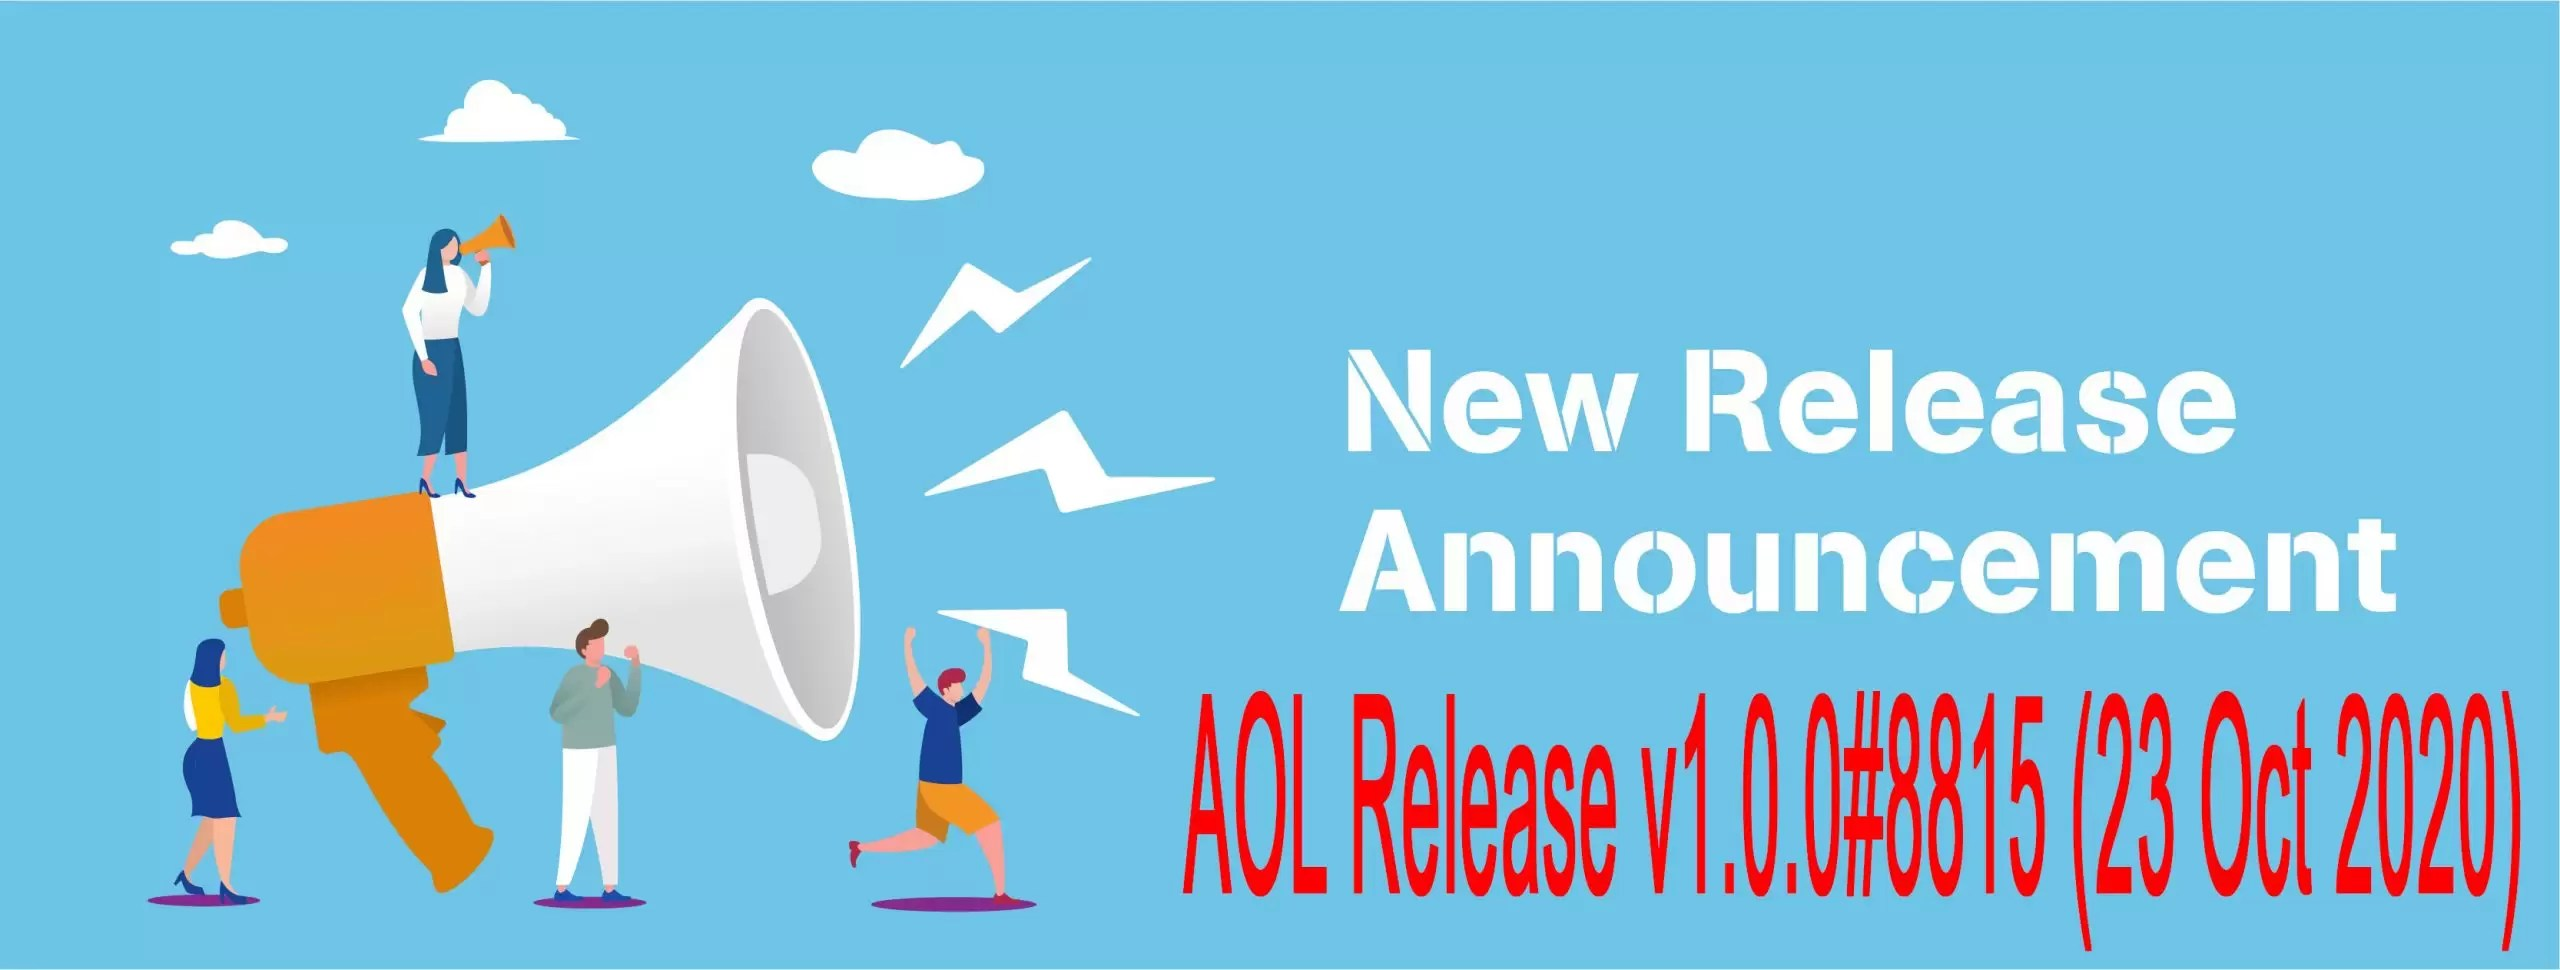 Accurate Online Release v1.0.0#8815 (23 Oct 2020)